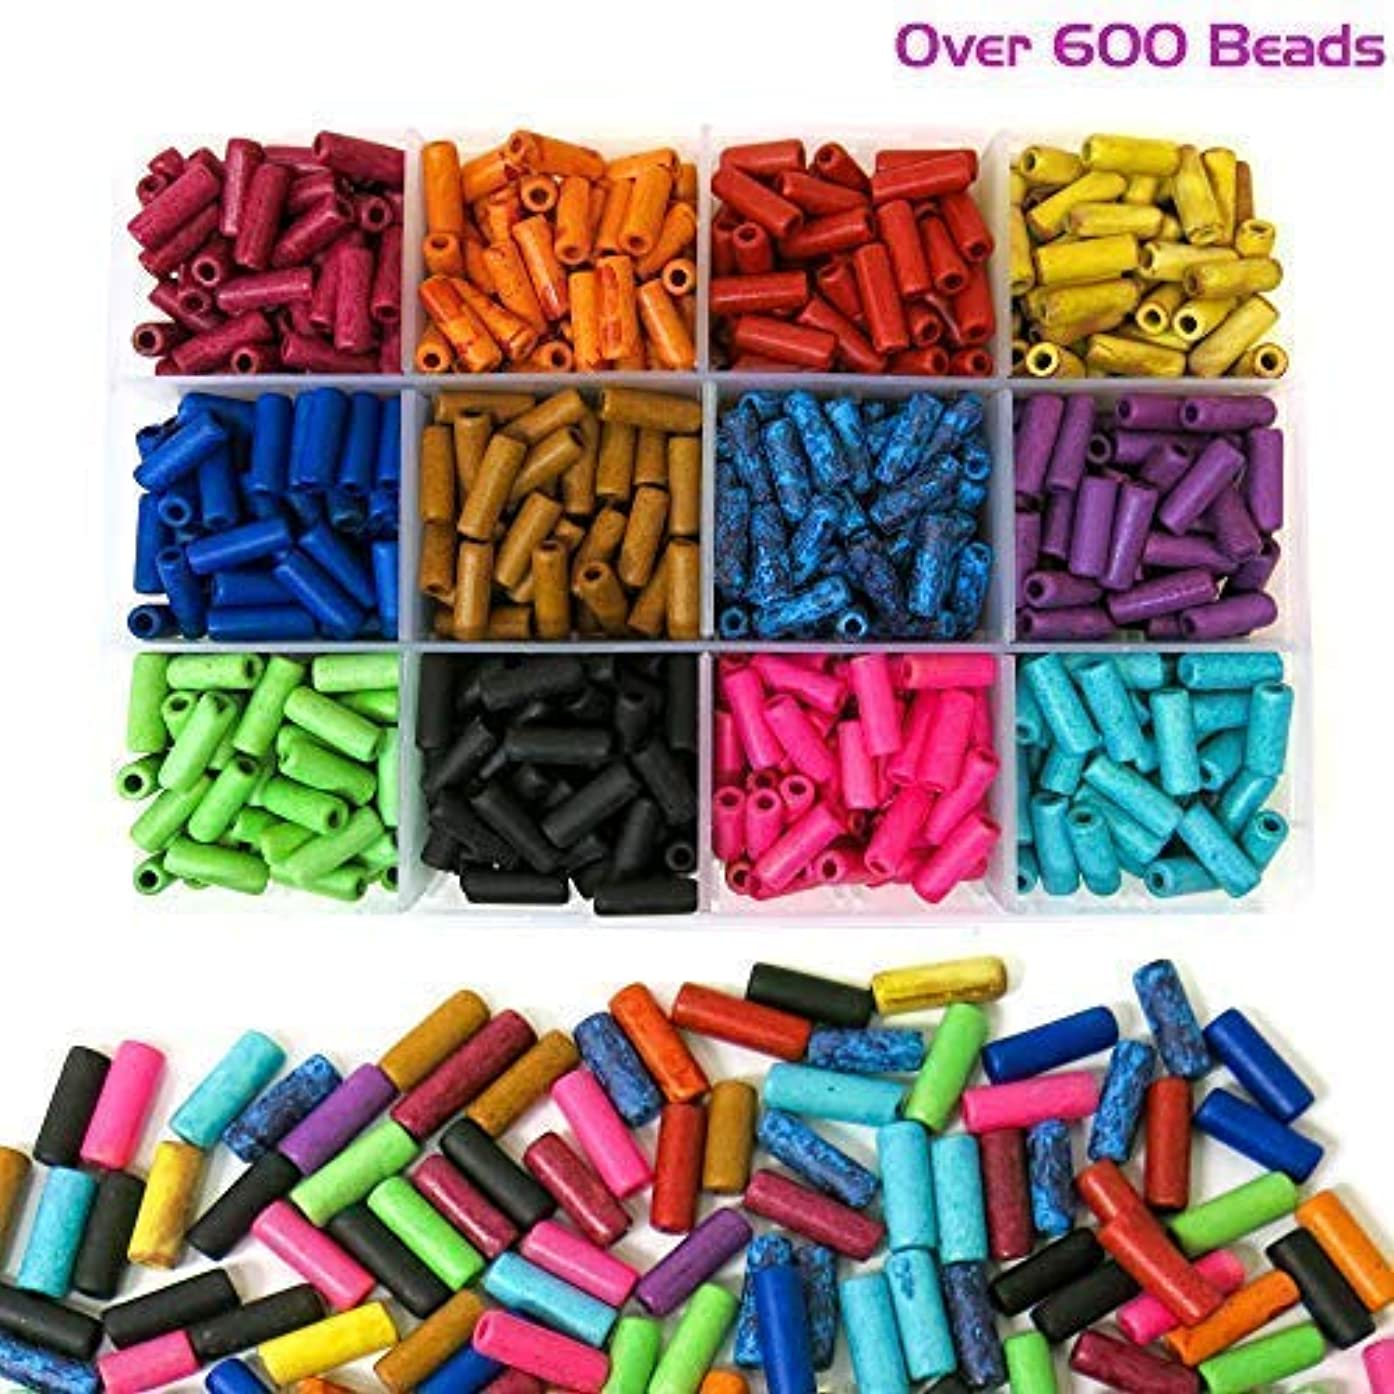 Over 600 Ceramic Tube Beads for Jewelry Making with Free Genuine Leather Cord Necklace - Handmade Colorful Premium Quality Craft Bead Kit - Unique Craft Supplies